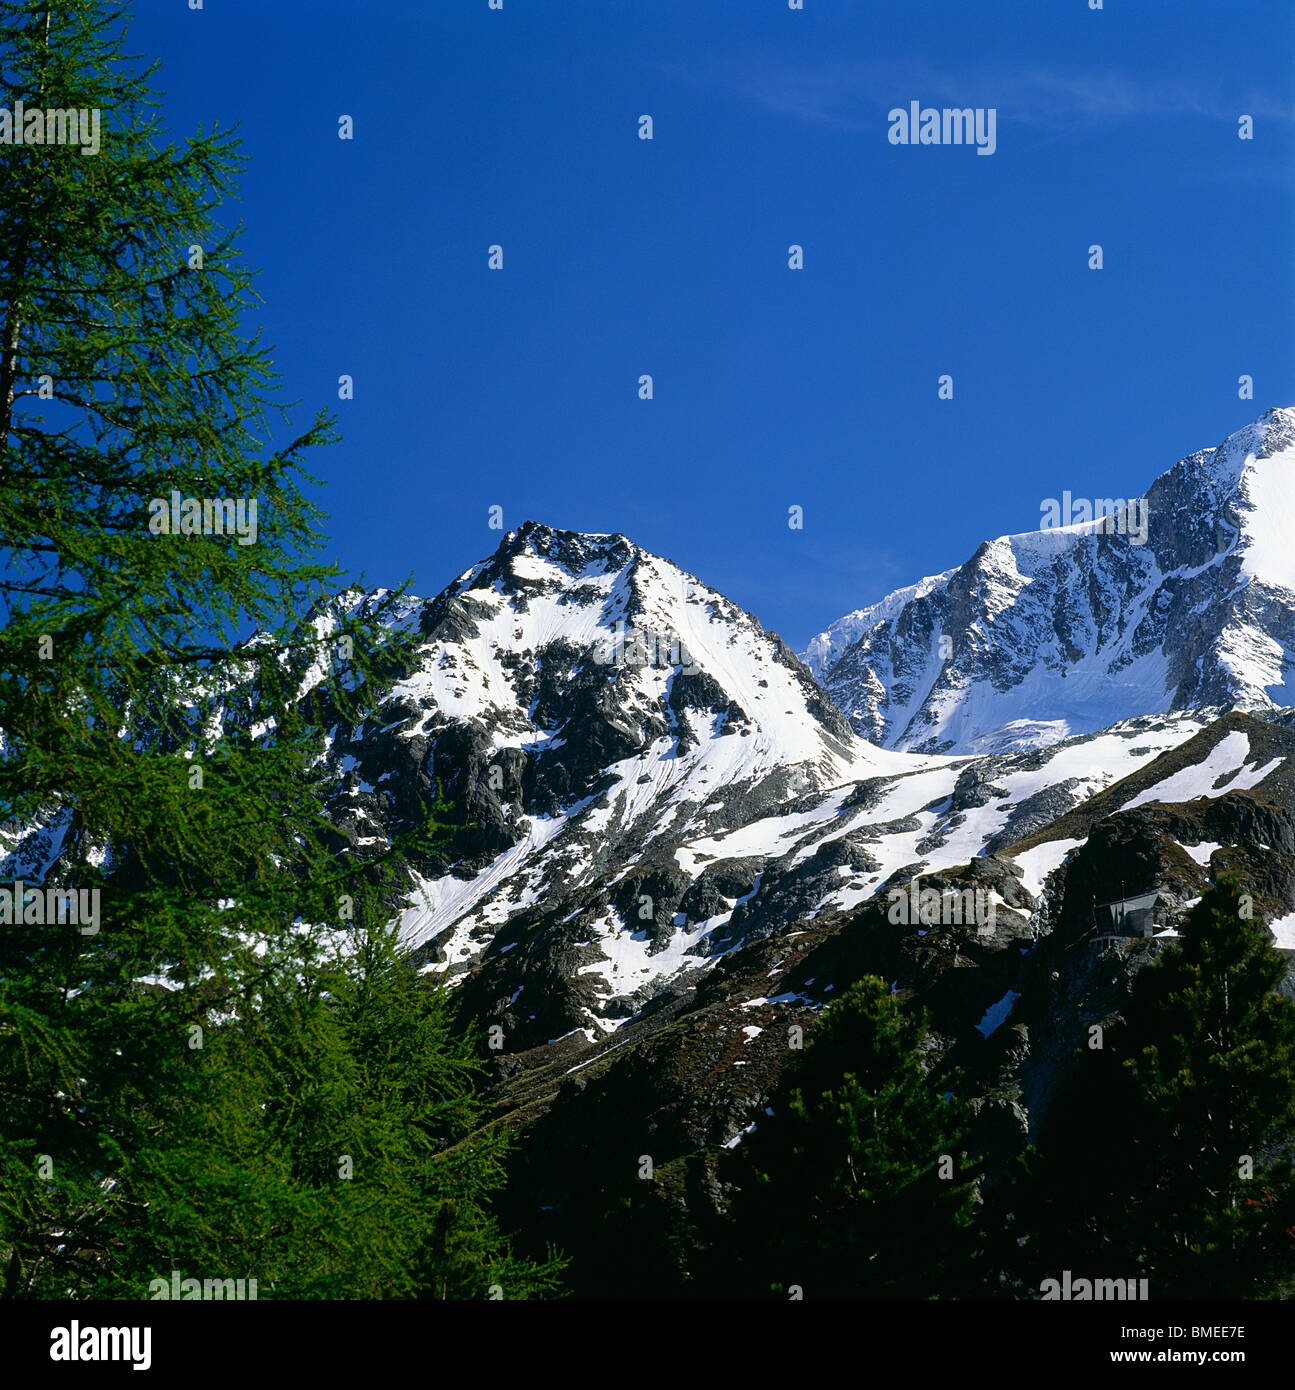 View of snowcapped mountains - Stock Image